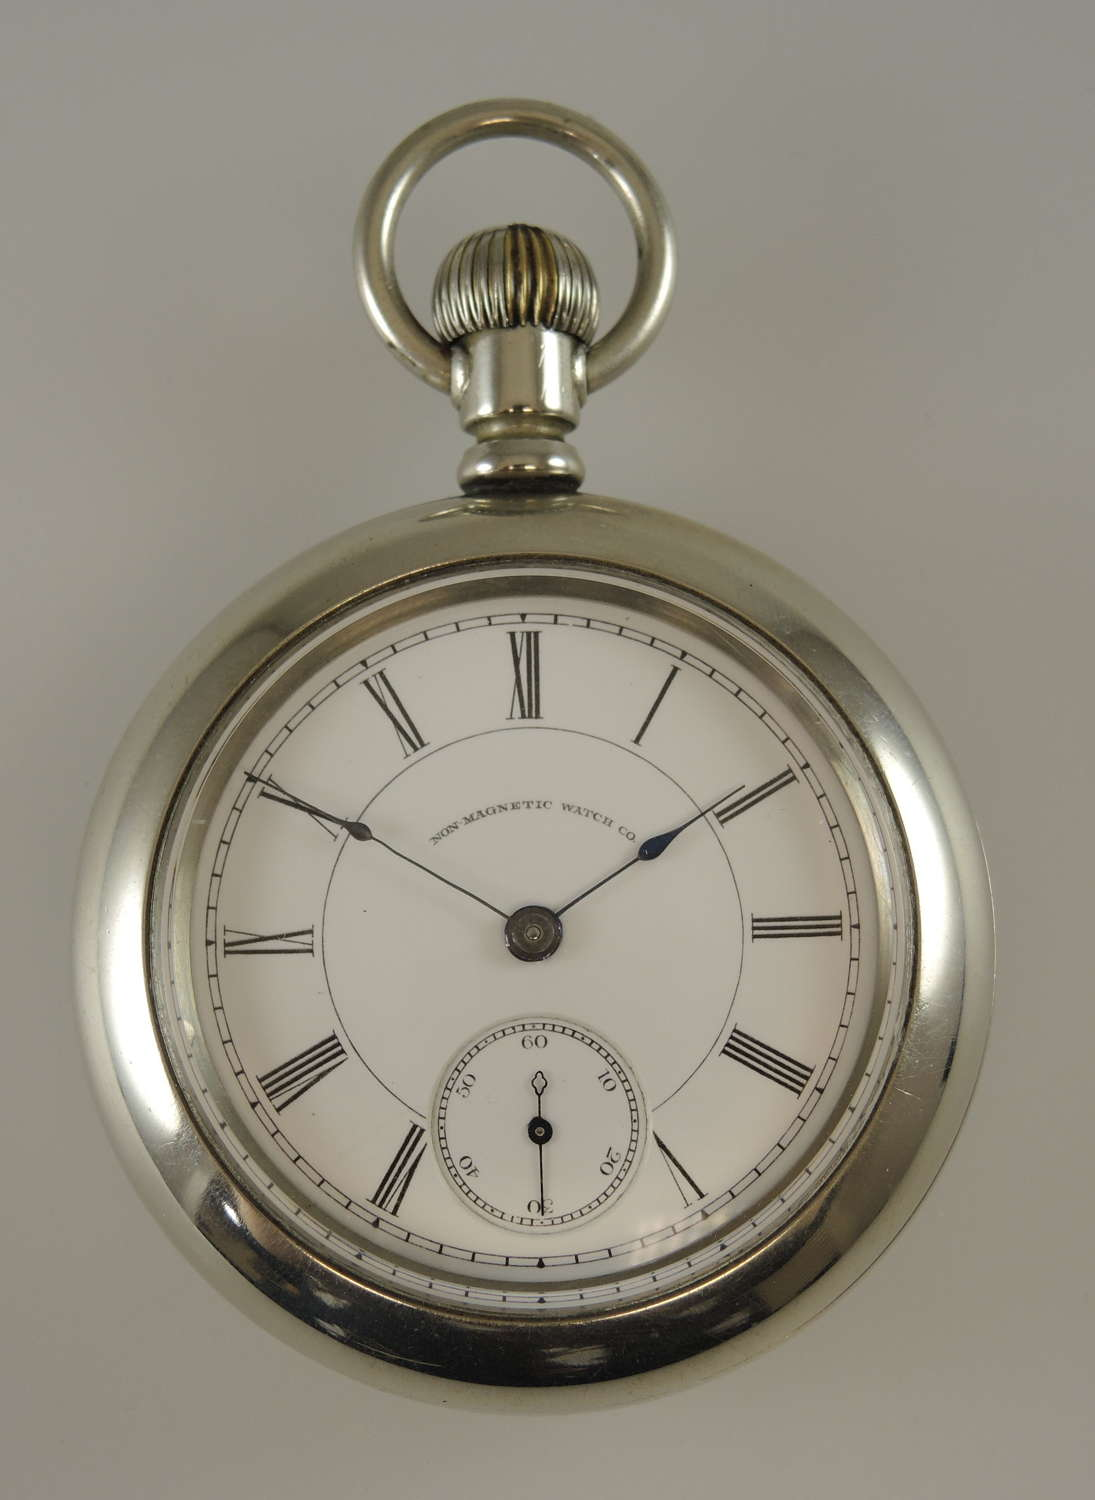 18s 15J Non Magnetic Watch Co. Peoria pocket watch c1890